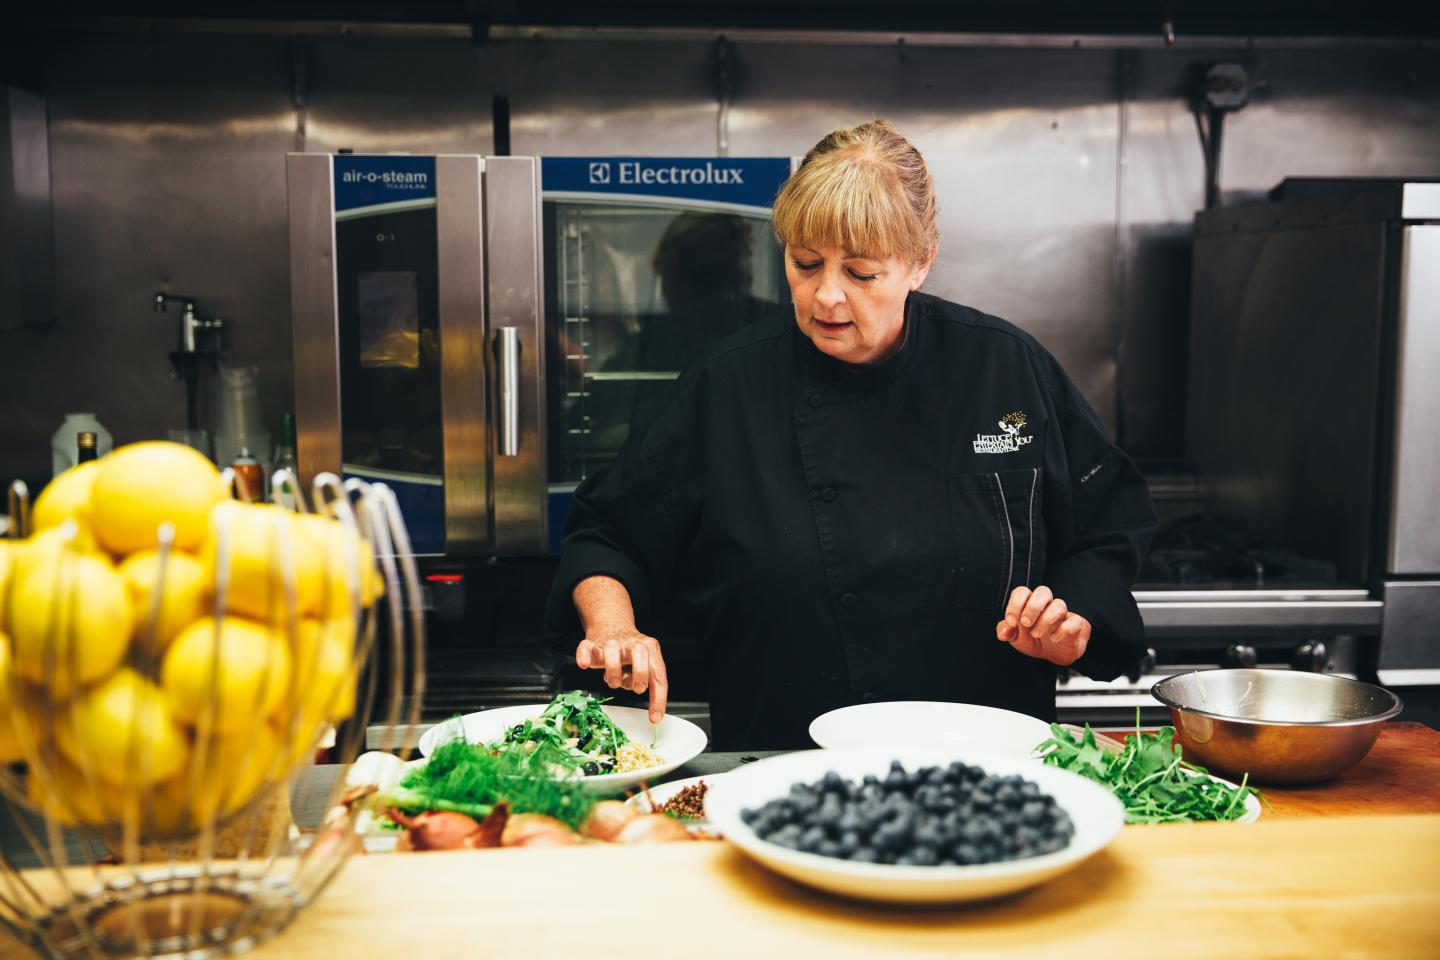 Chef Rita preparing a salad with arugula and blueberries